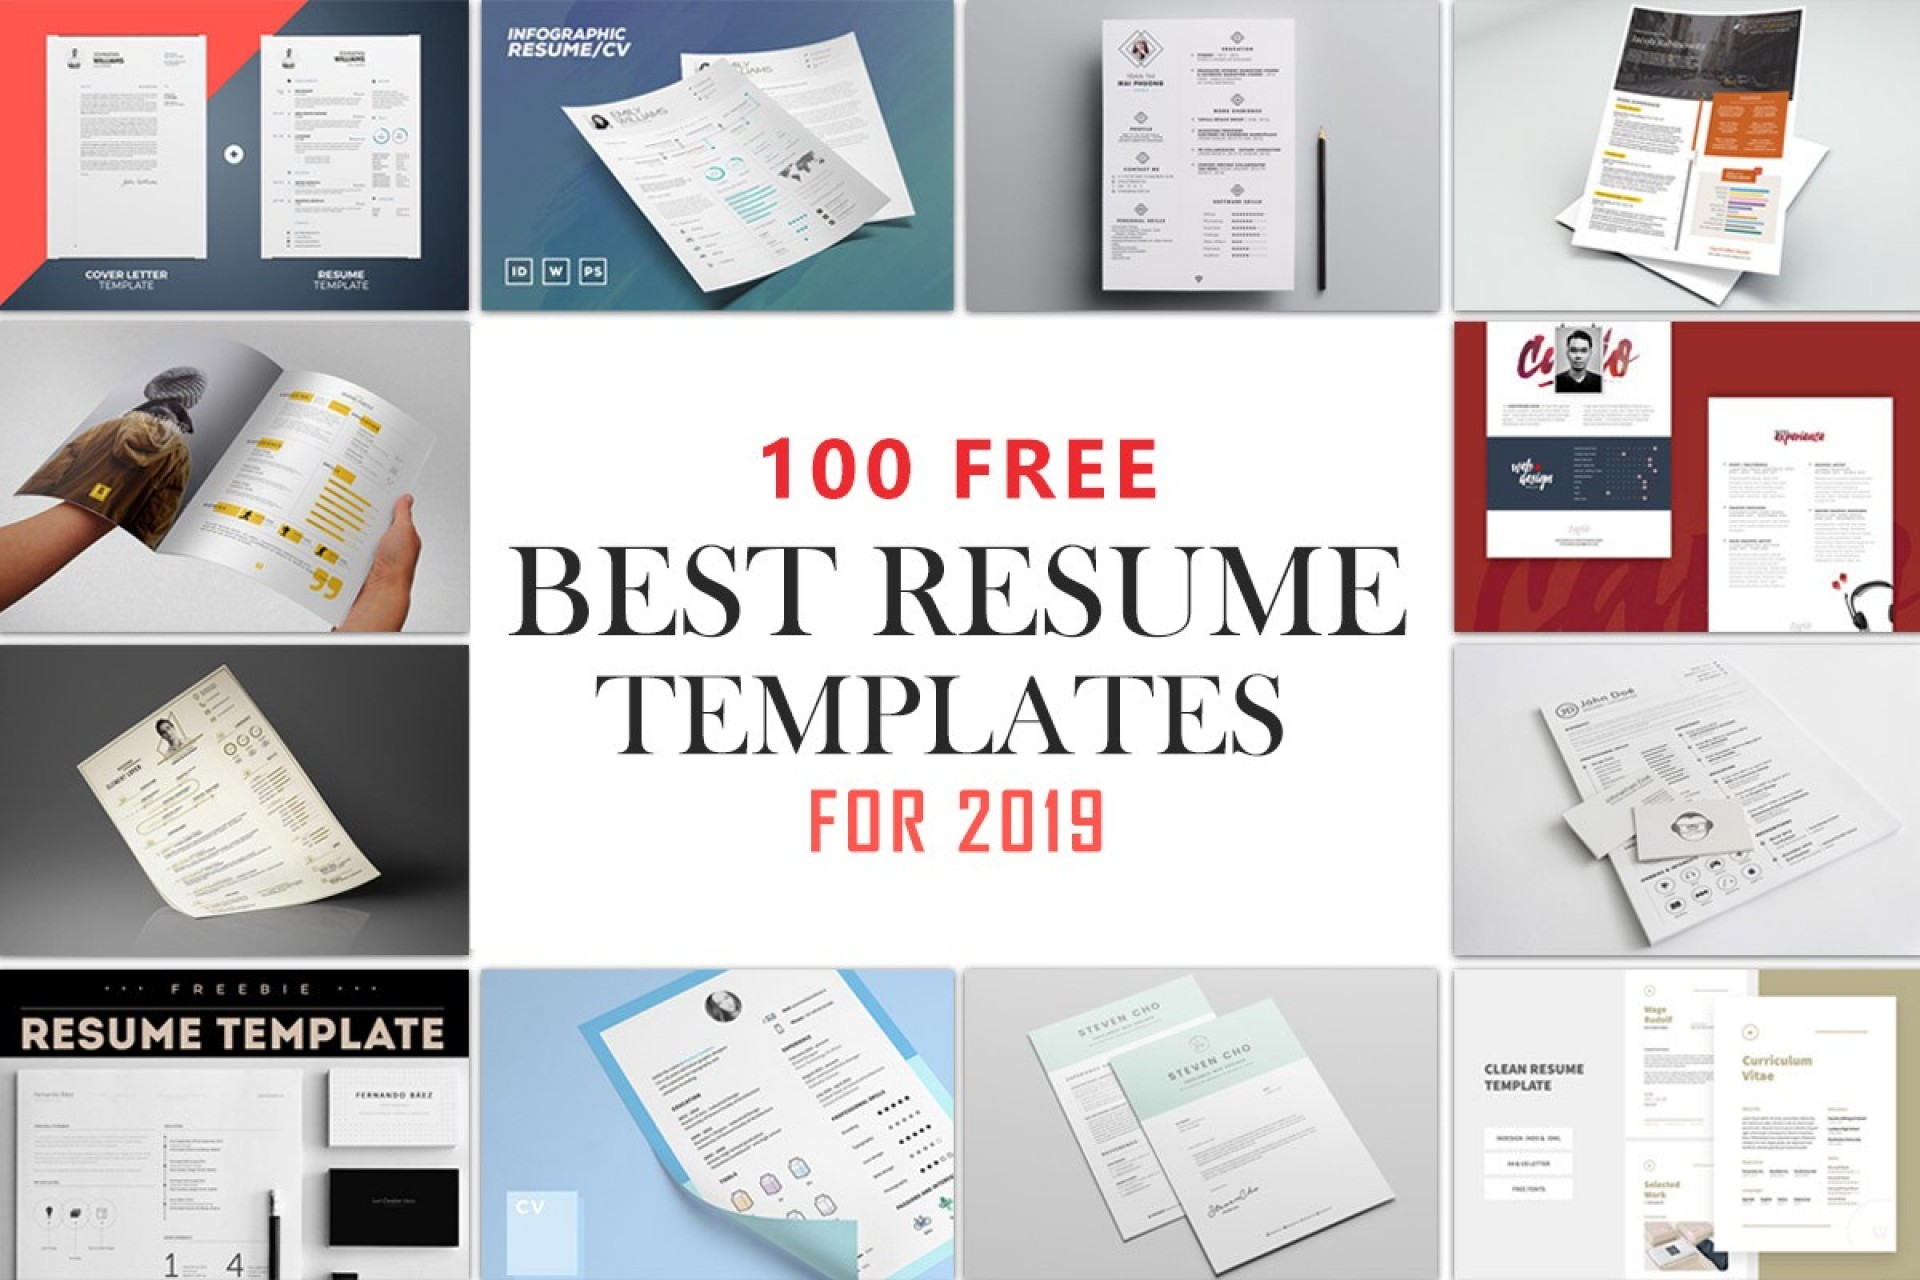 000 Impressive Best Free Resume Template 2020 Photo  Word Review1920